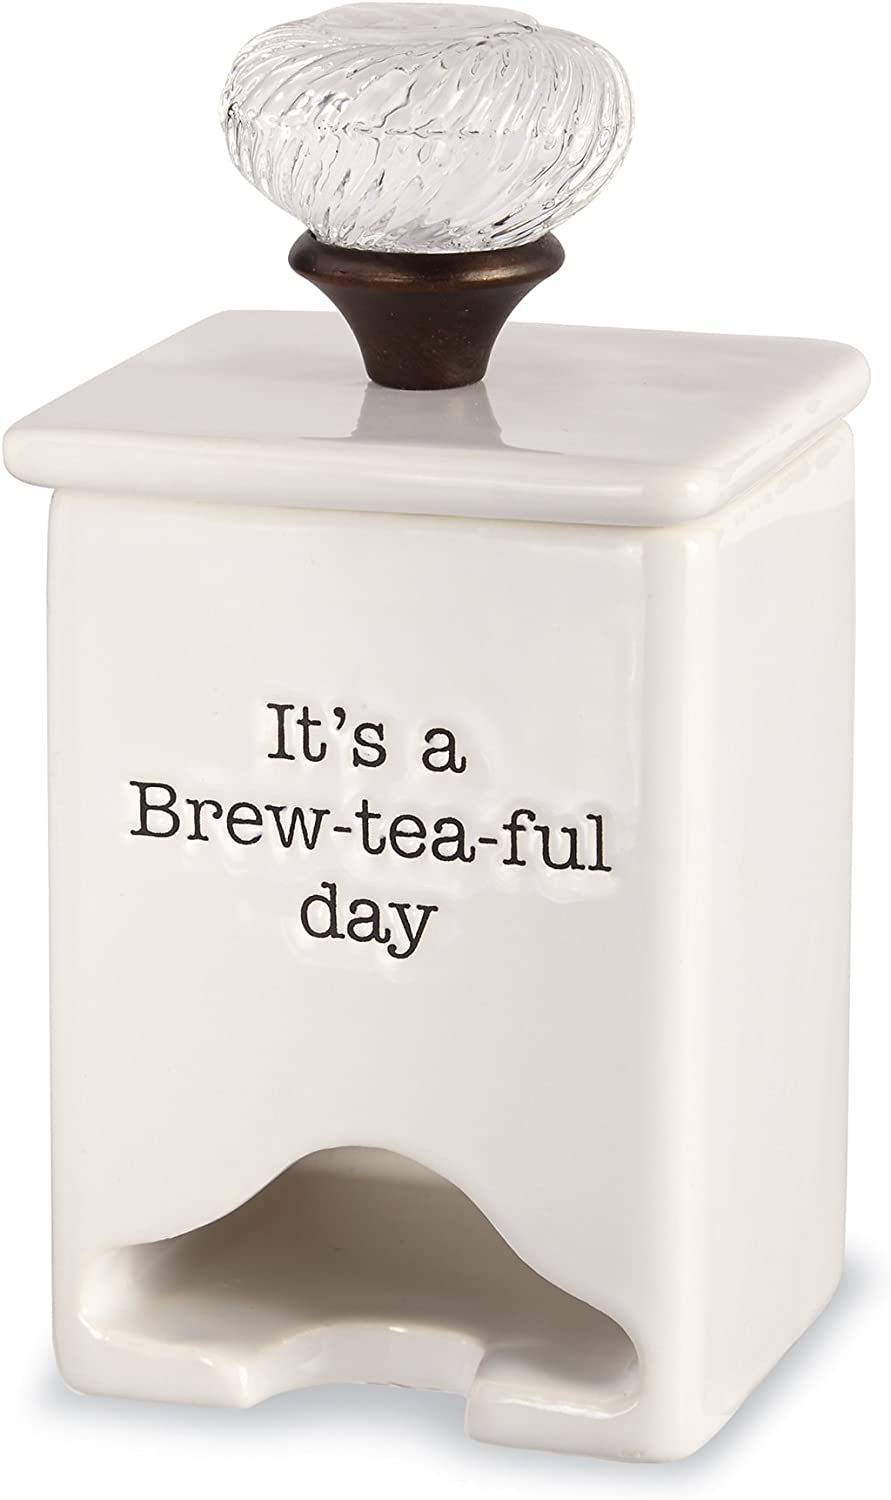 Mud Pie FBA_4771009 Ceramic Tea Bag Caddy, White